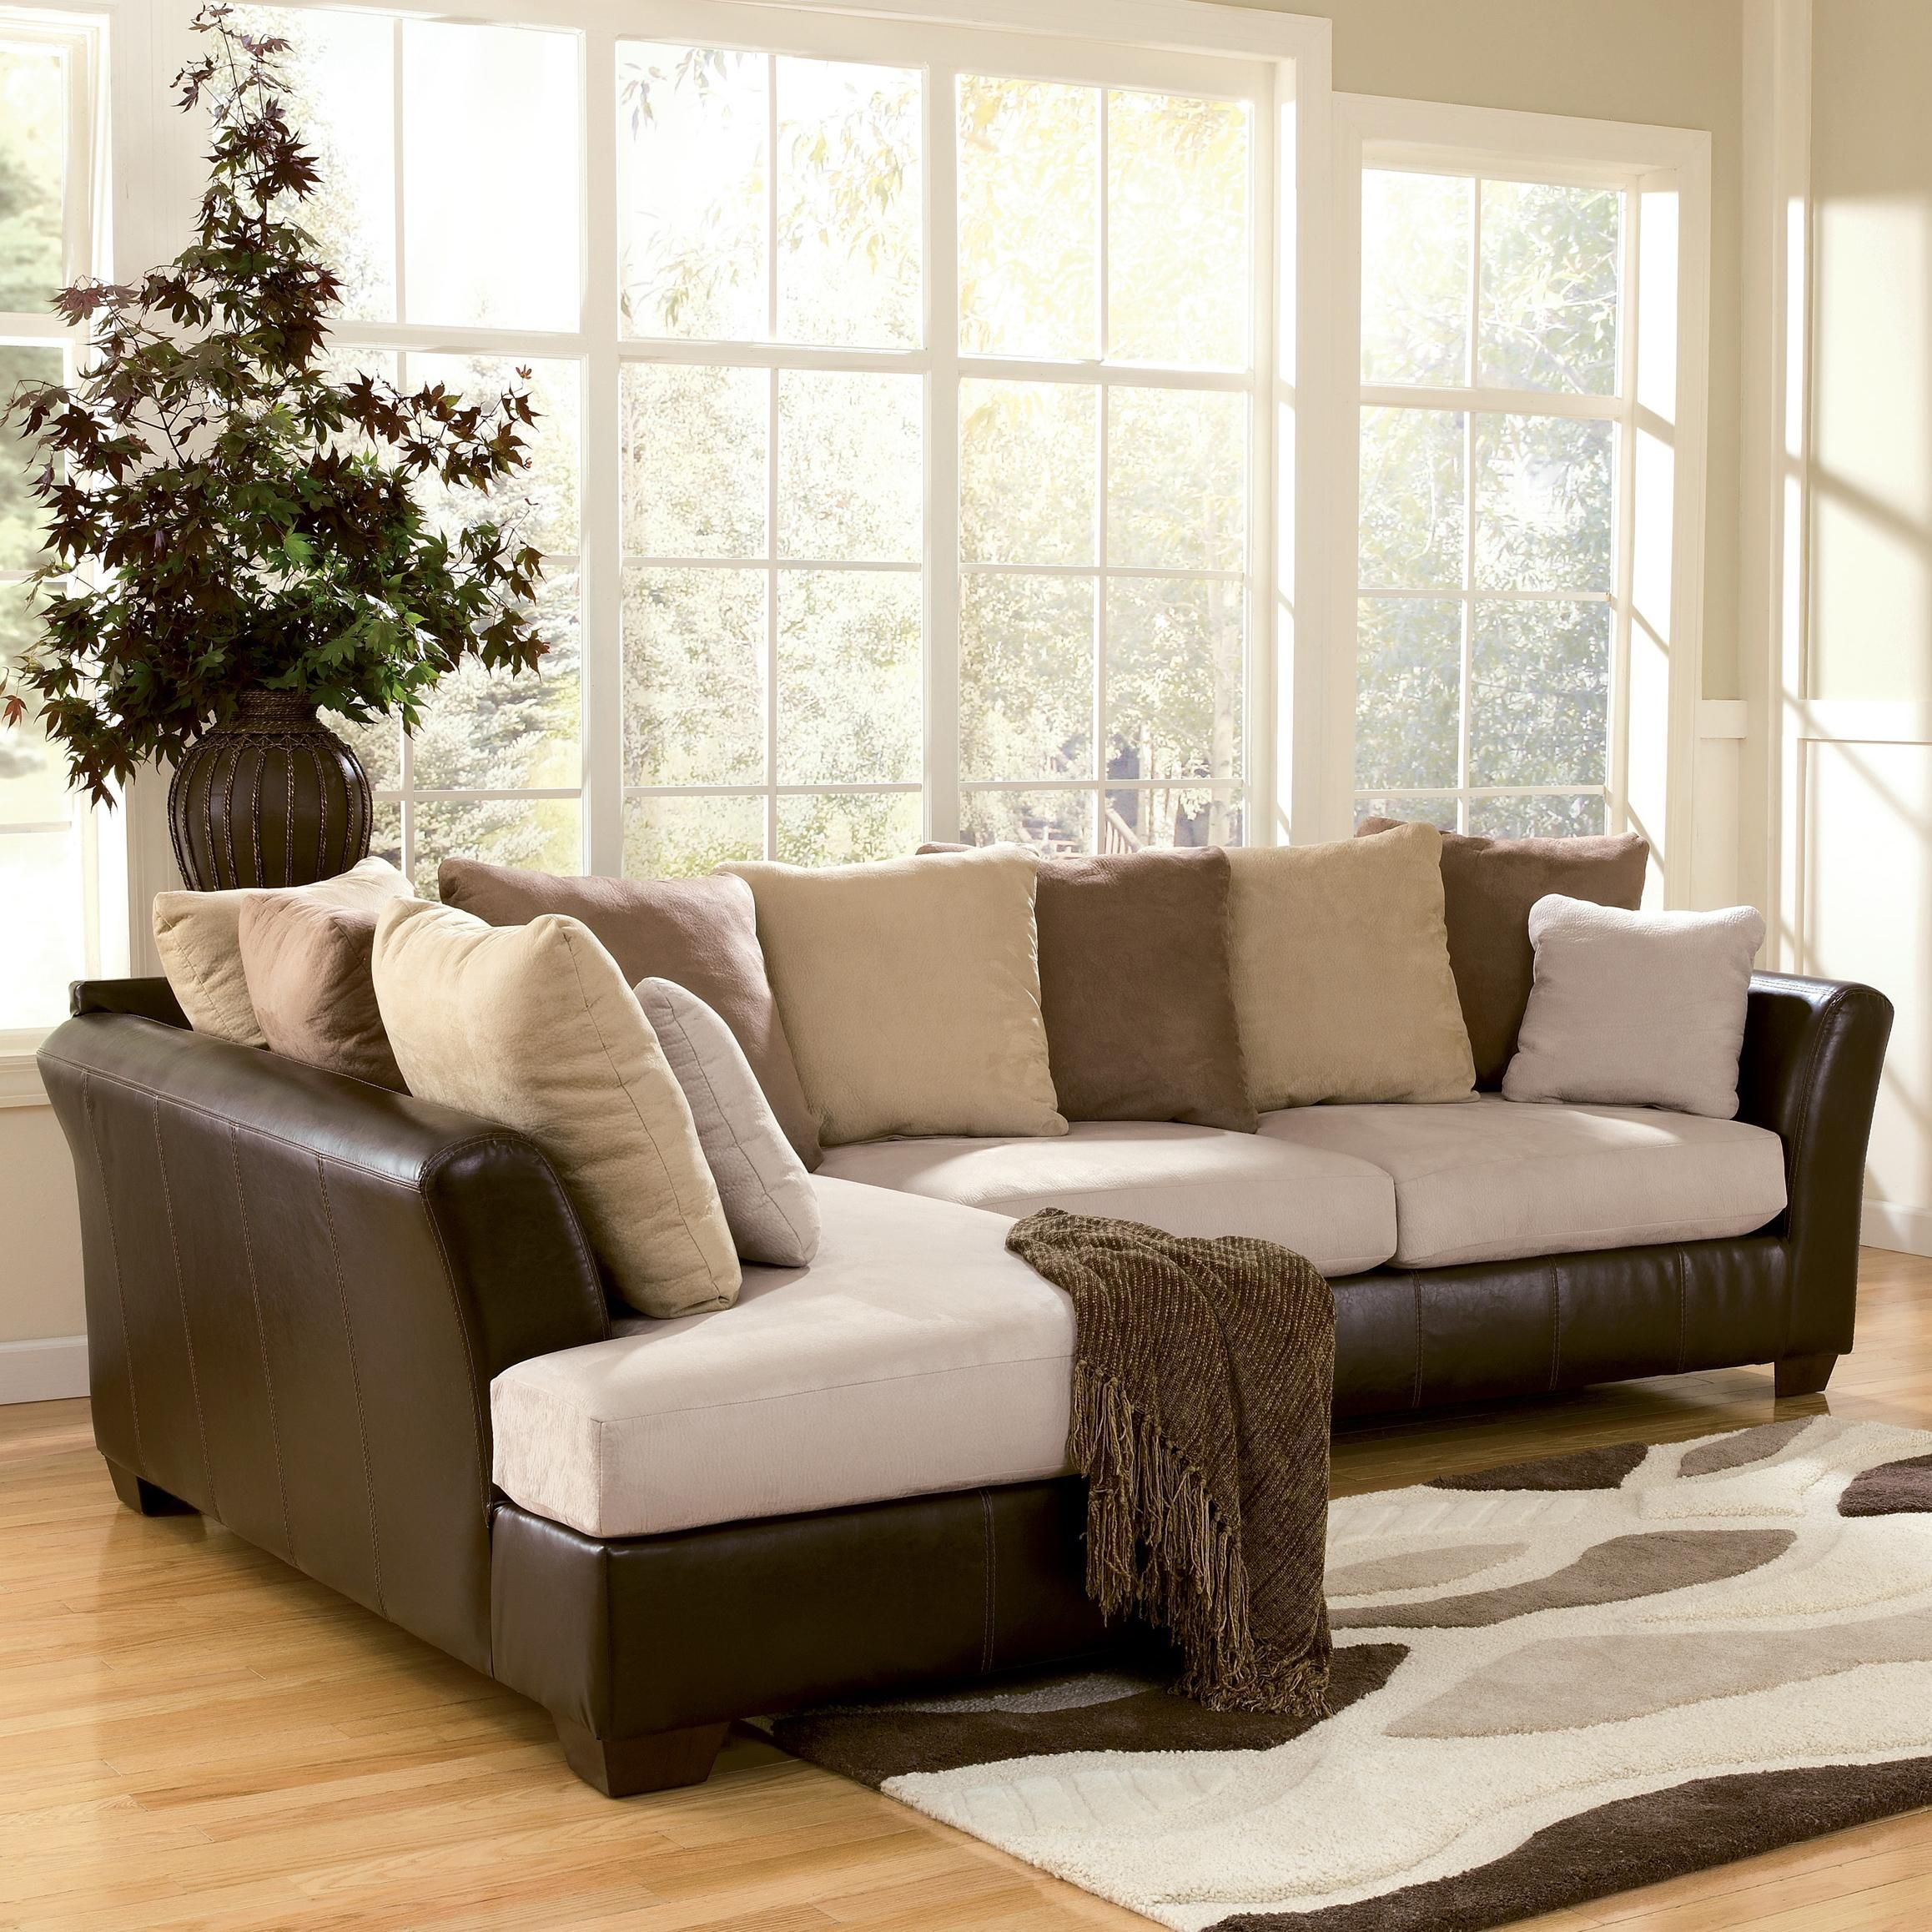 Logan Sectional with Chaise by Ashley Furniture